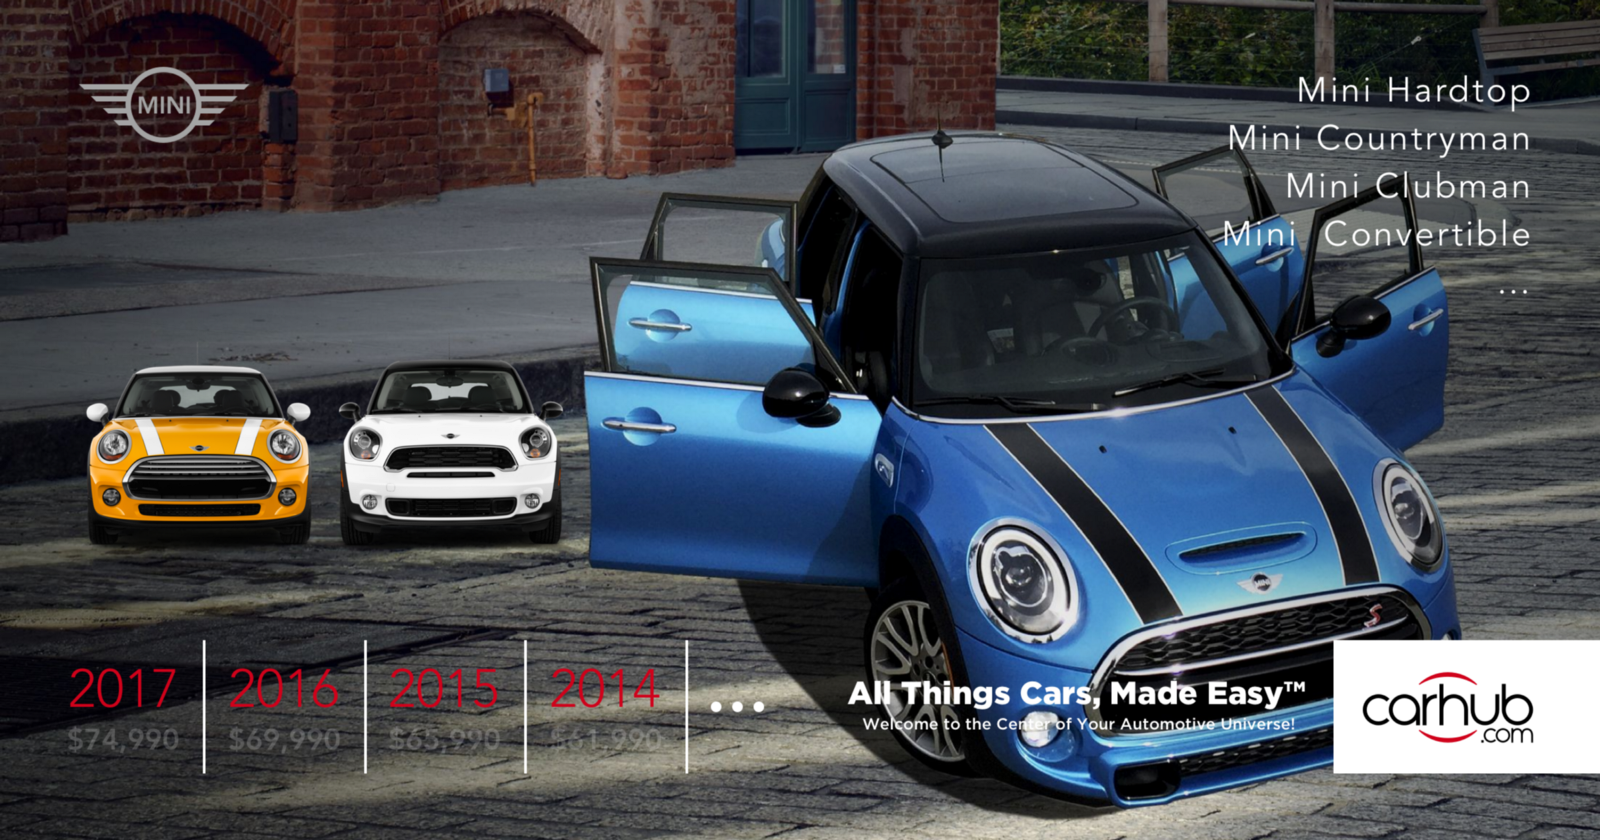 All Mini Car Models Carhub Medium